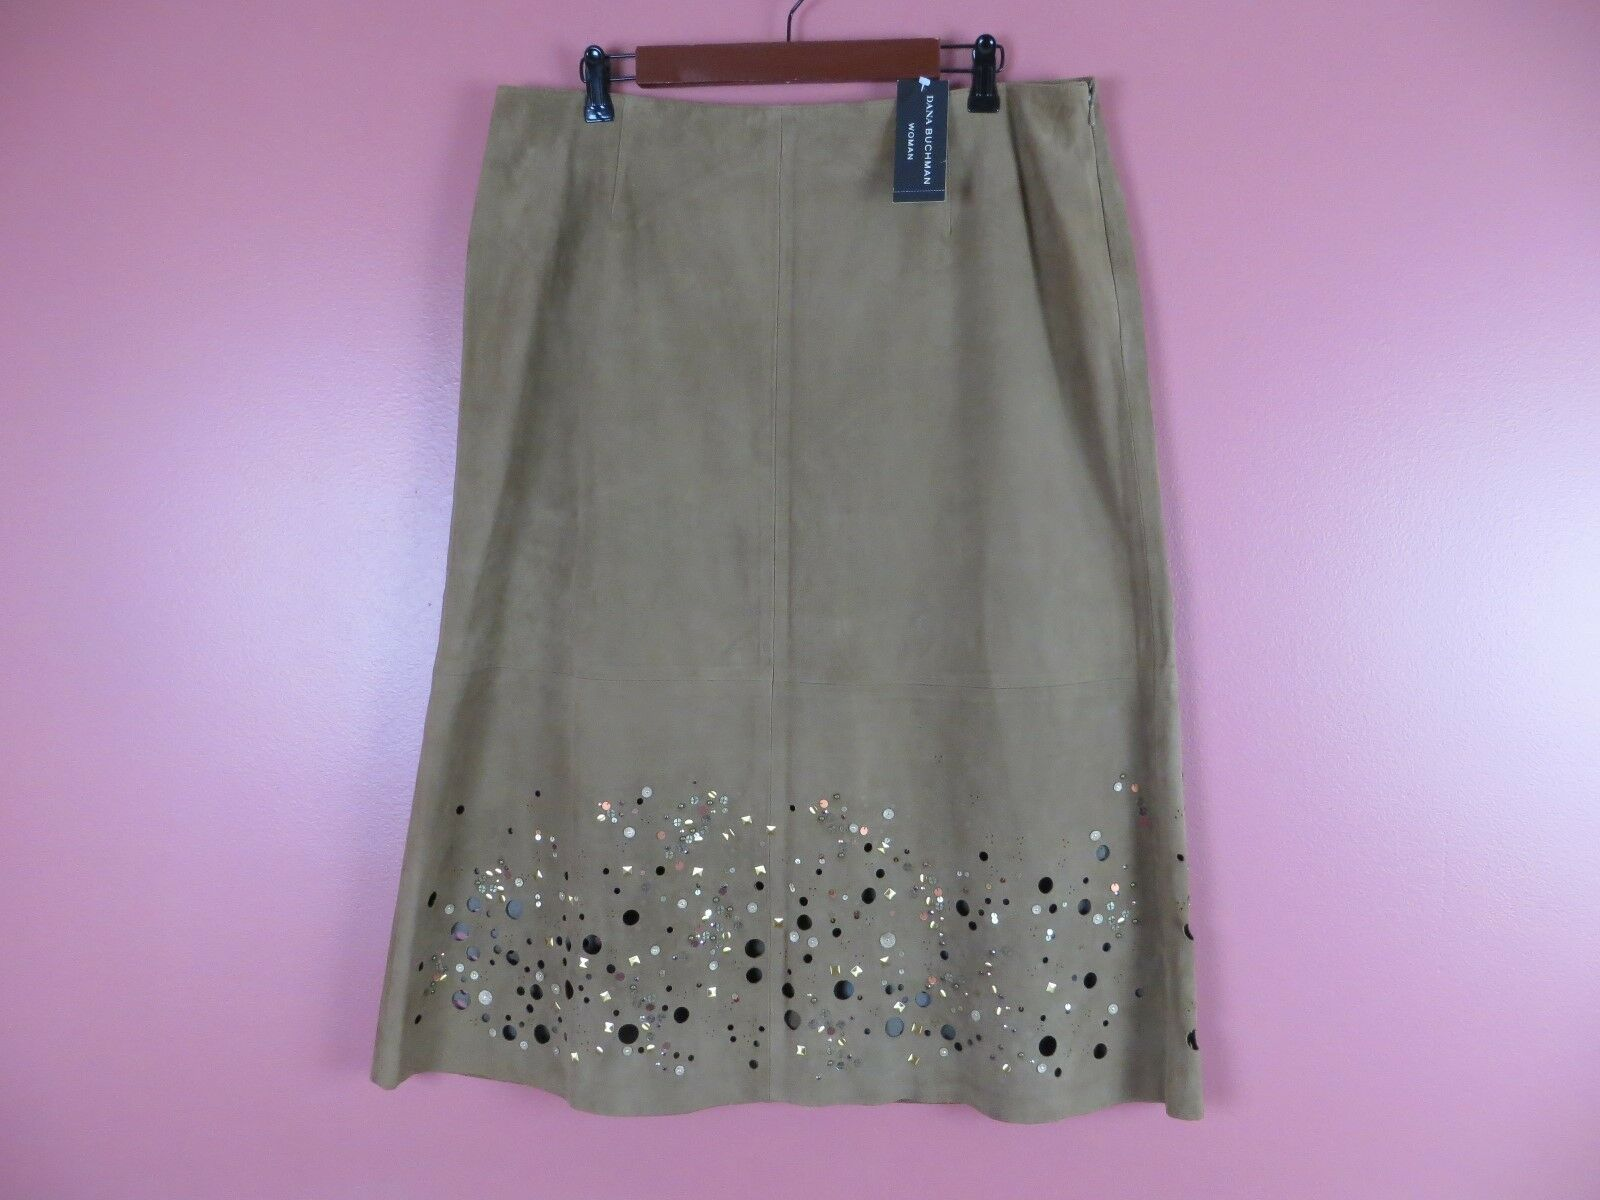 LTR0496- NWT DANA BUCHMAN Woman Suede Leather Skirt Sequined Dark Brown 16